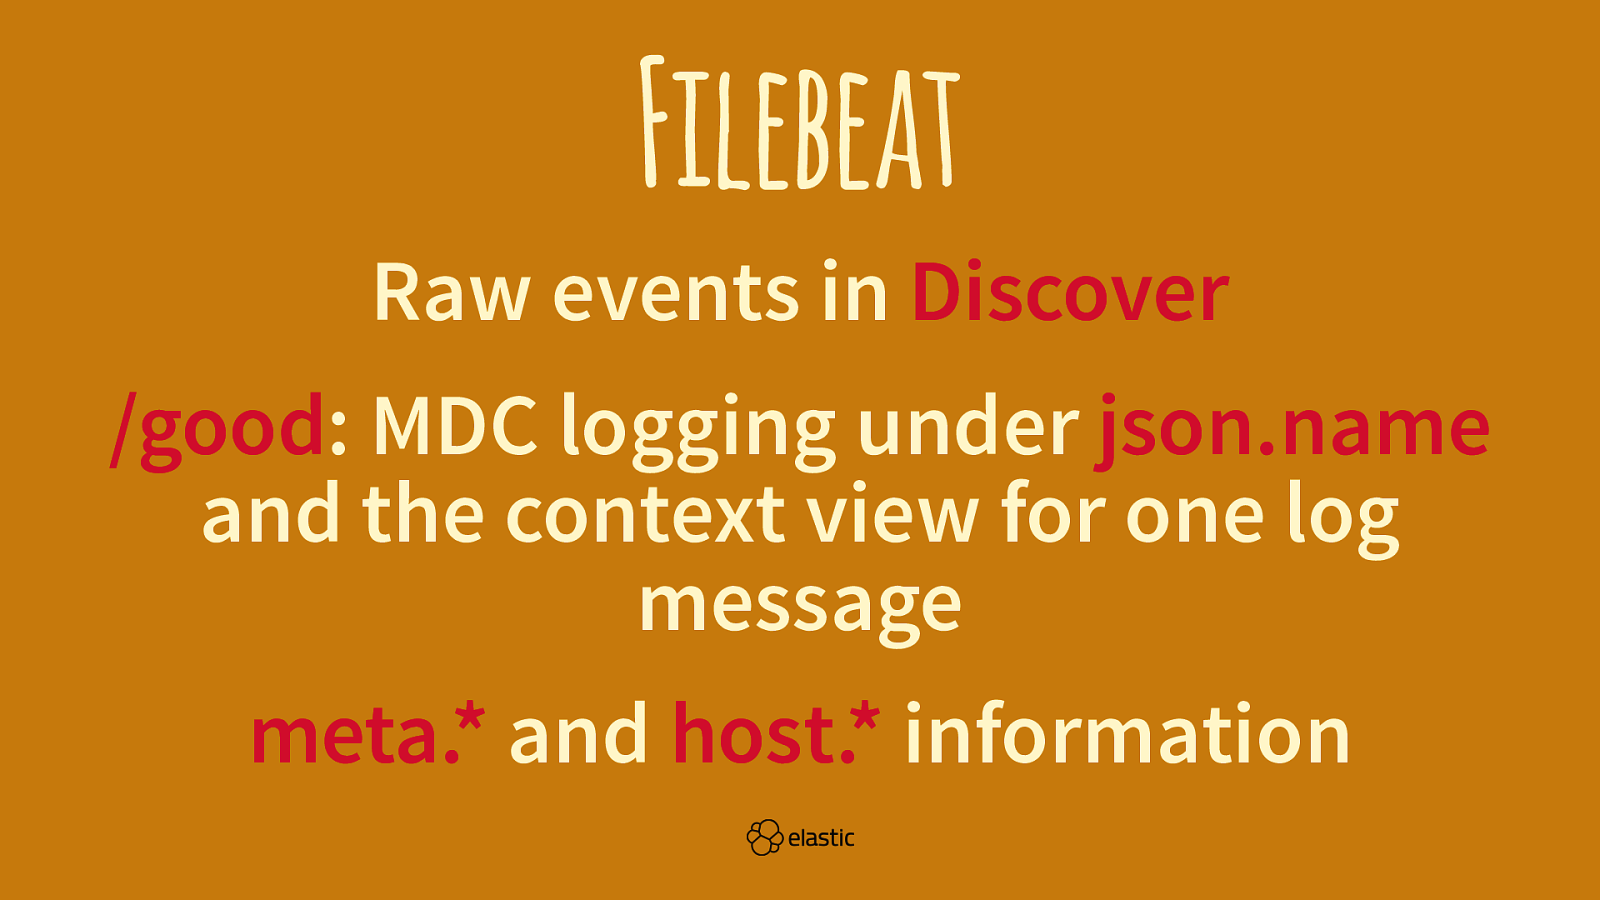 Filebeat Log